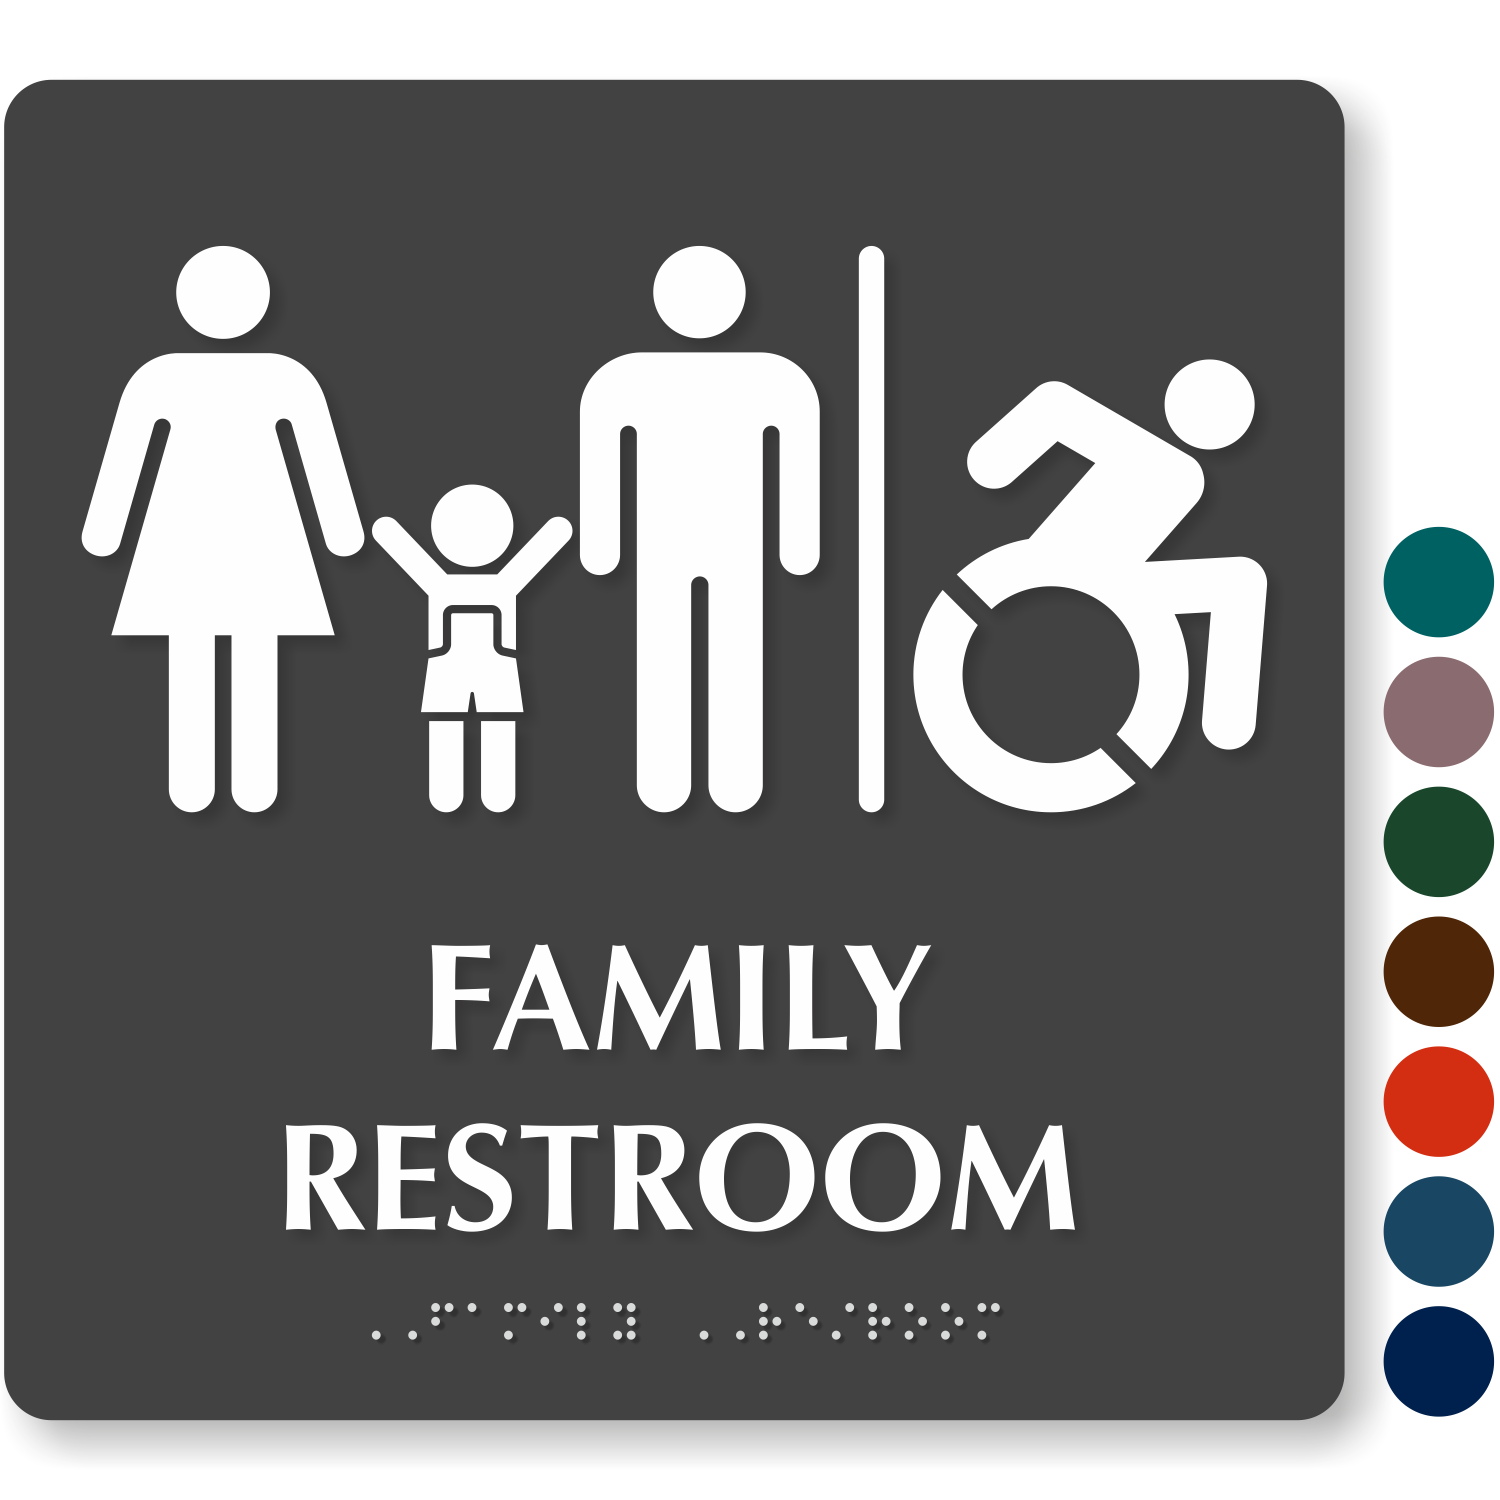 Bathroom Sign Png family restroom signs